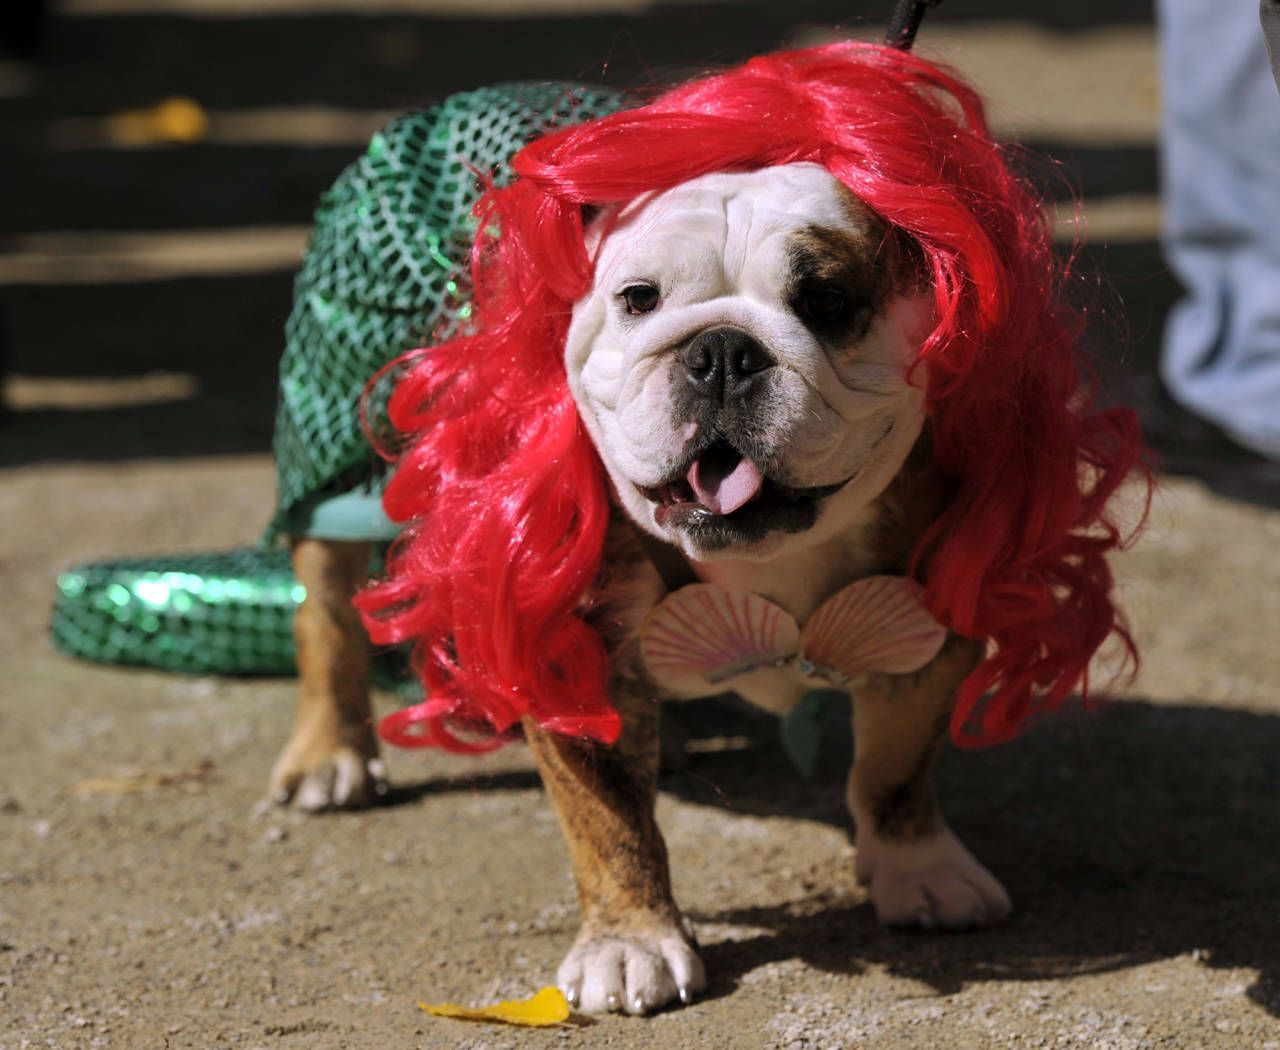 29 Pet Halloween Costumes So Cute You'll Cry | Halloween costumes ...